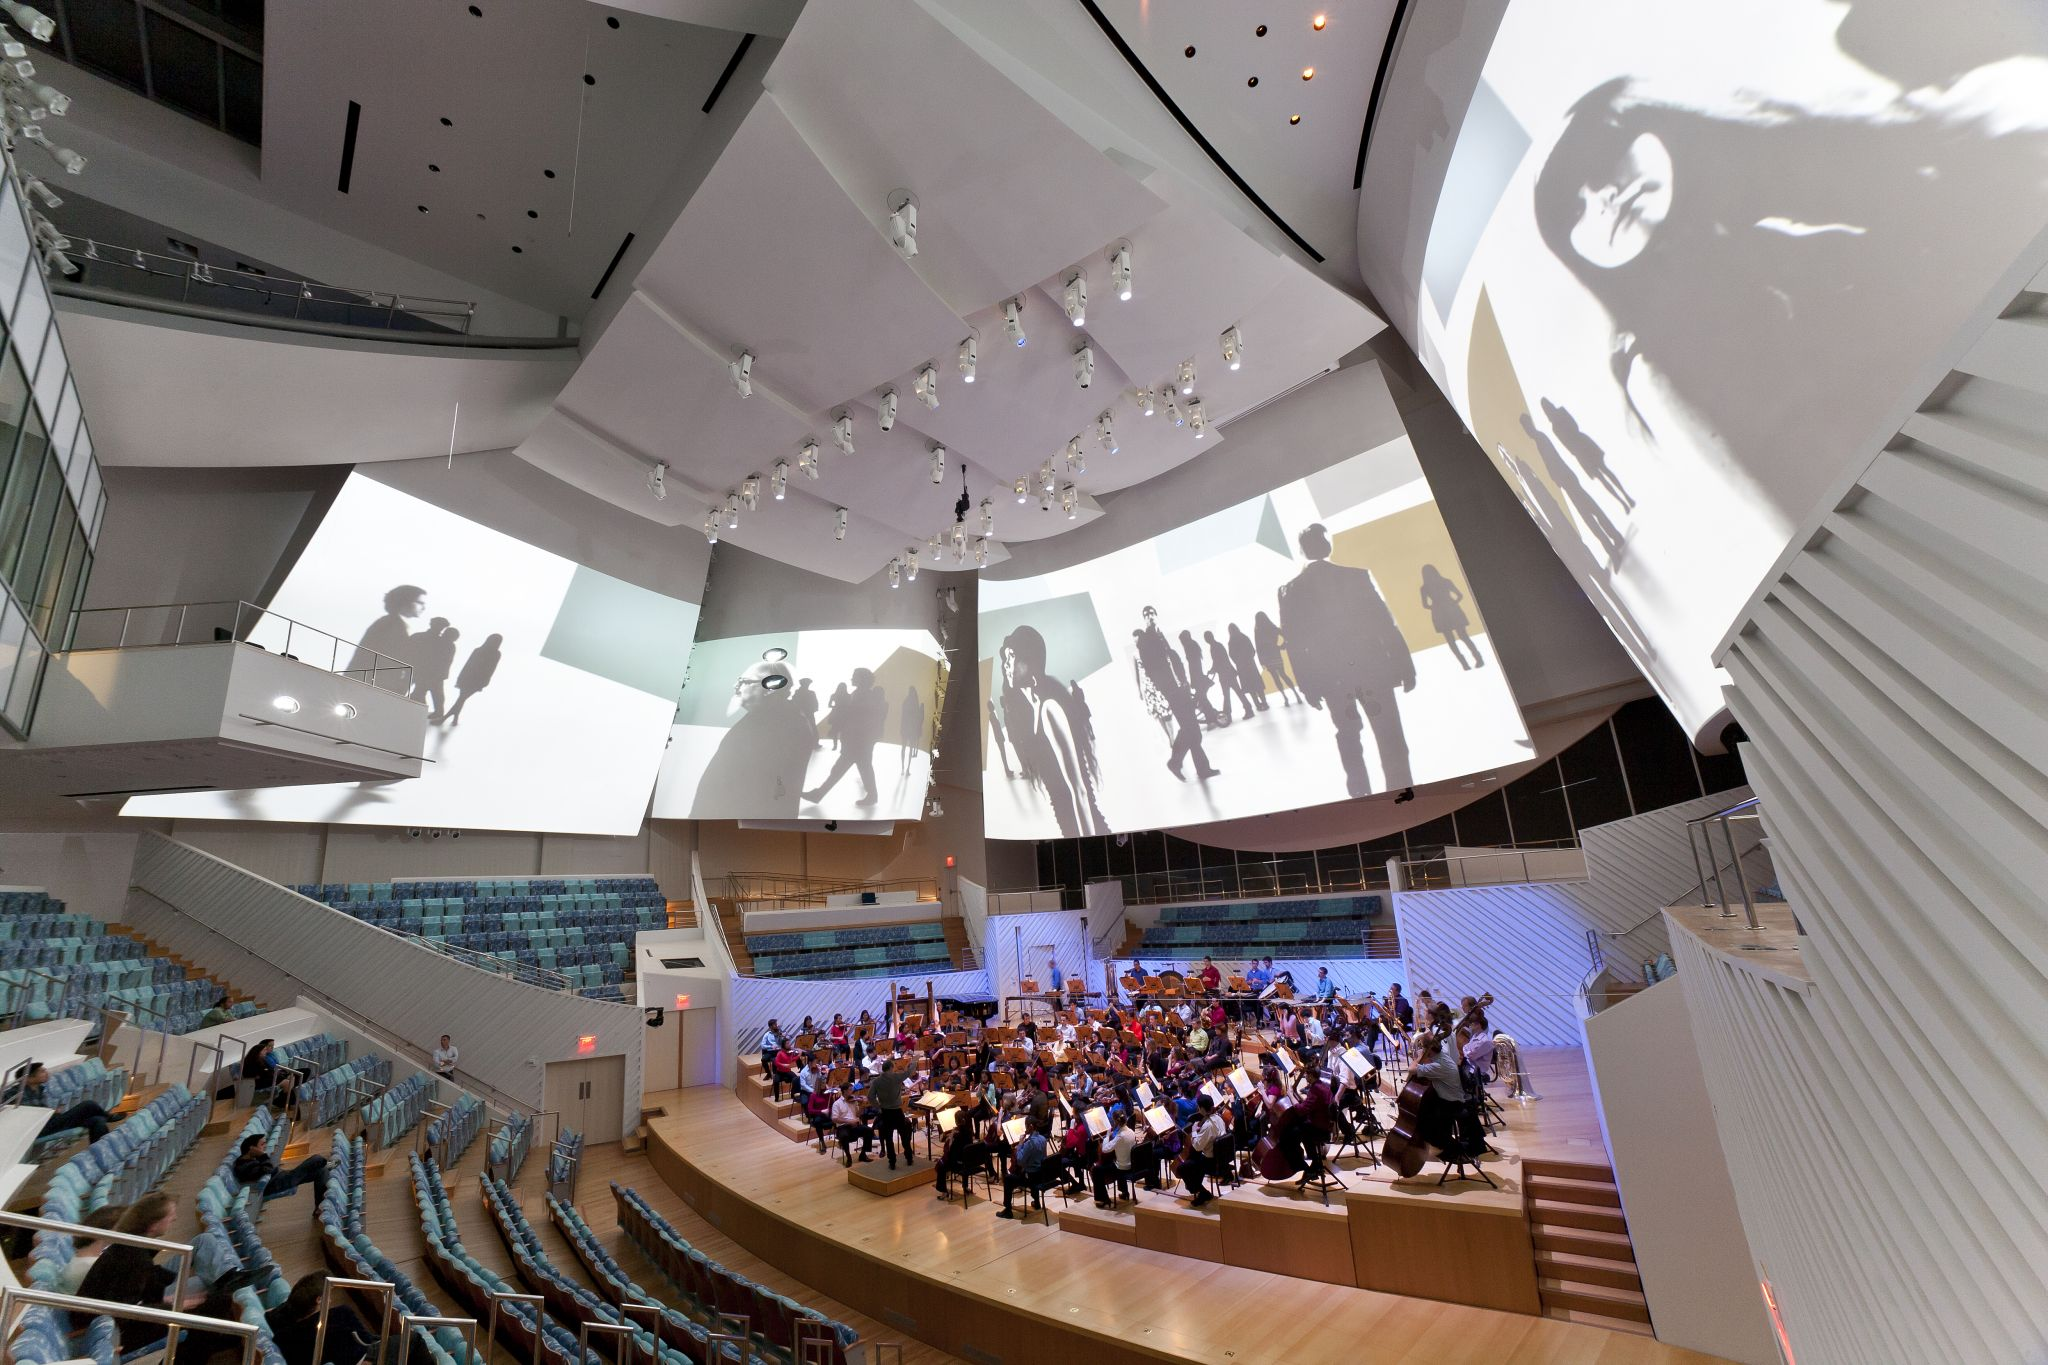 Acoustics concert and acoustics architectural: what is the difference